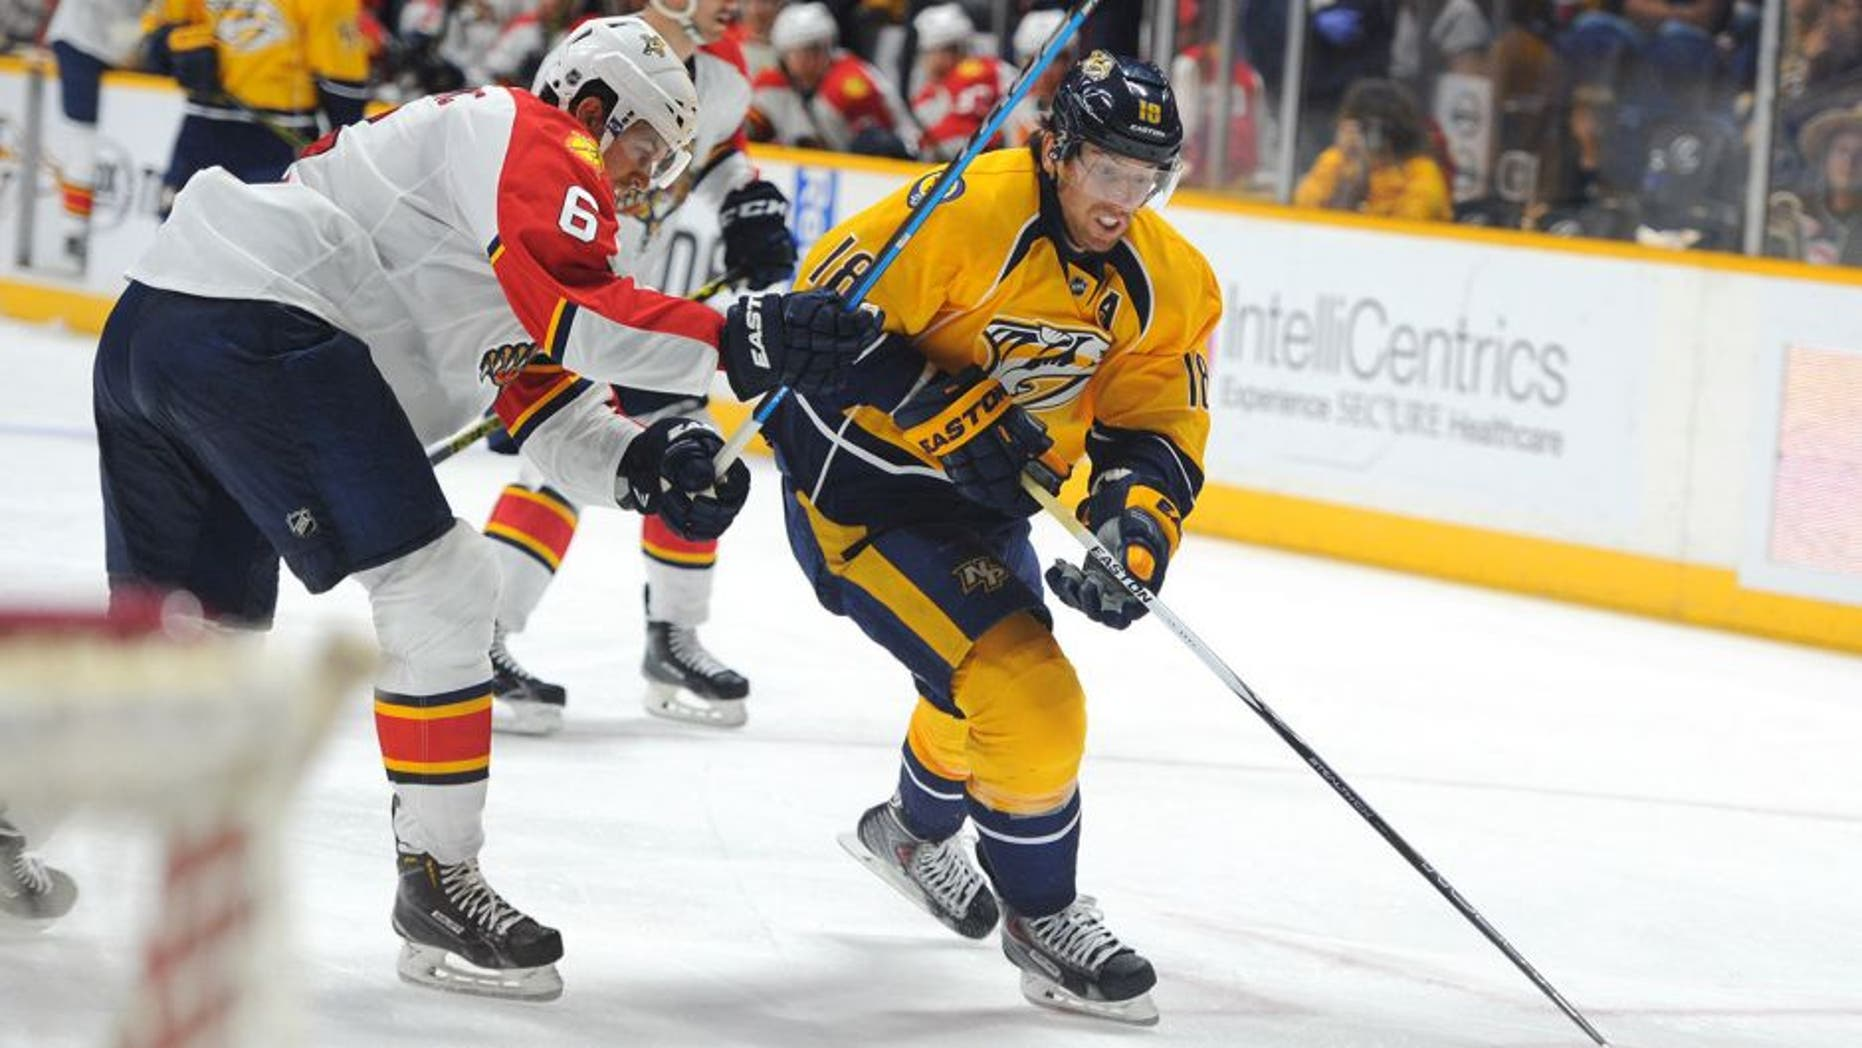 Sep 20, 2015; Nashville, TN, USA; Nashville Predators left winger James Neal (18) skates the puck into the zone during the third period against the Florida Panthers at Bridgestone Arena. Mandatory Credit: Christopher Hanewinckel-USA TODAY Sports